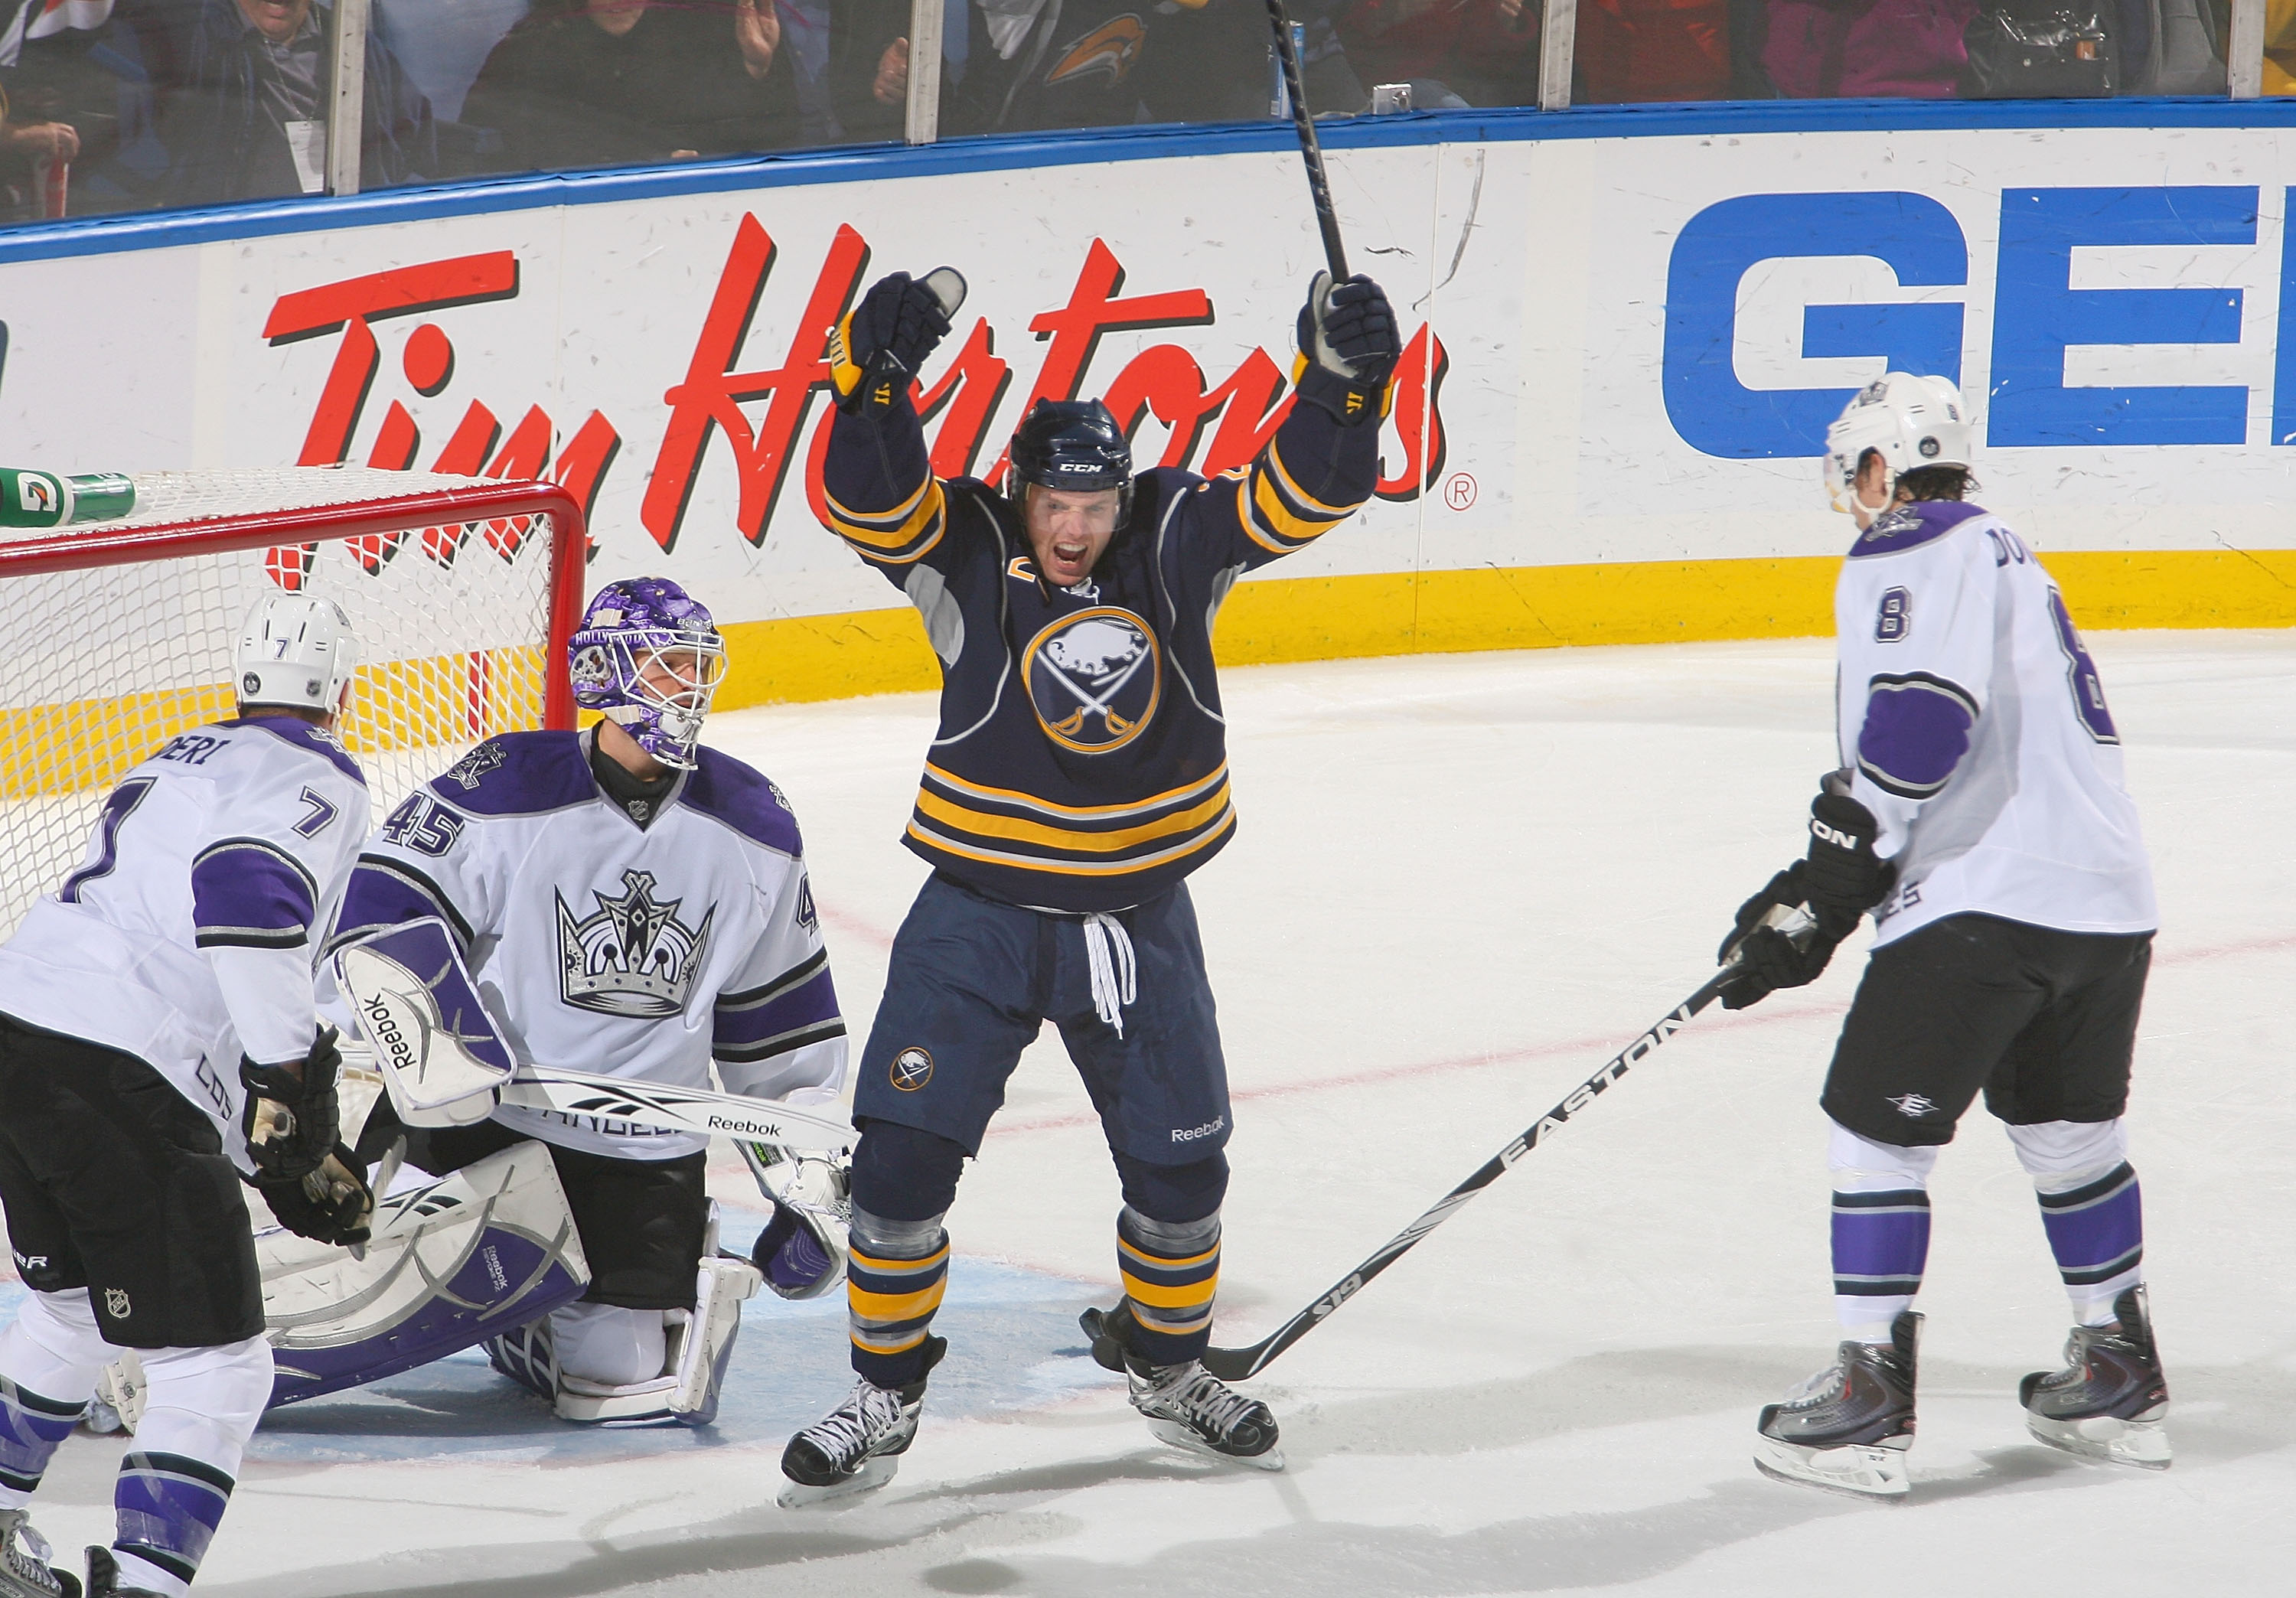 BUFFALO, NY - NOVEMBER 19: Thomas Vanek #26 of the Buffalo Sabres celebrates a goal by teammate Derek Roy #9 (not shown) against Rob Scuderi #7, Jonathan Bernier #45 and Drew Doughty #8 of the Los Angeles Kings at HSBC Arena on November 19, 2010 in Buffal